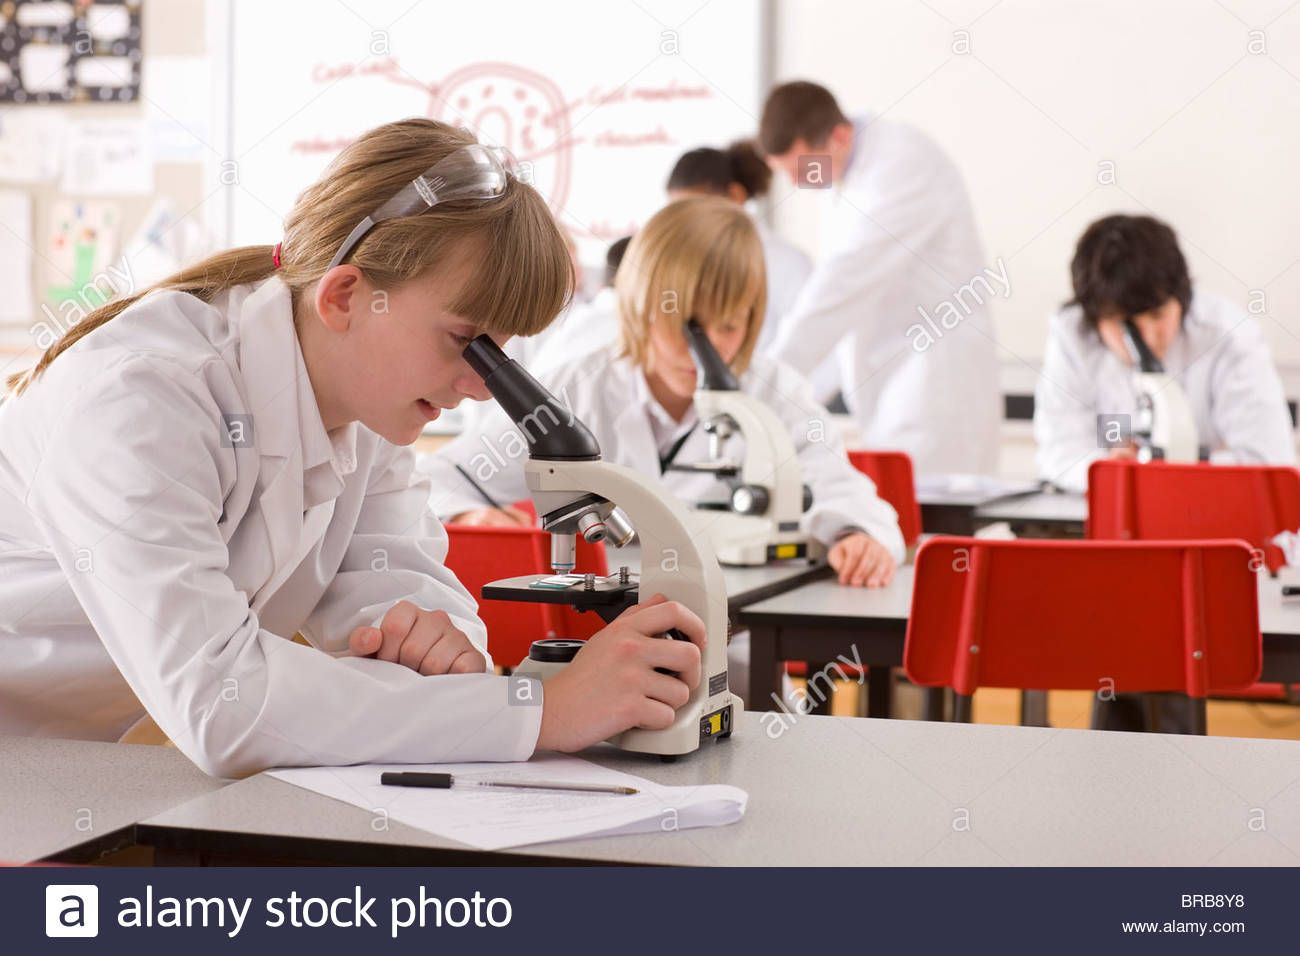 Students looking into microscopes in school laboratory - Stock Image